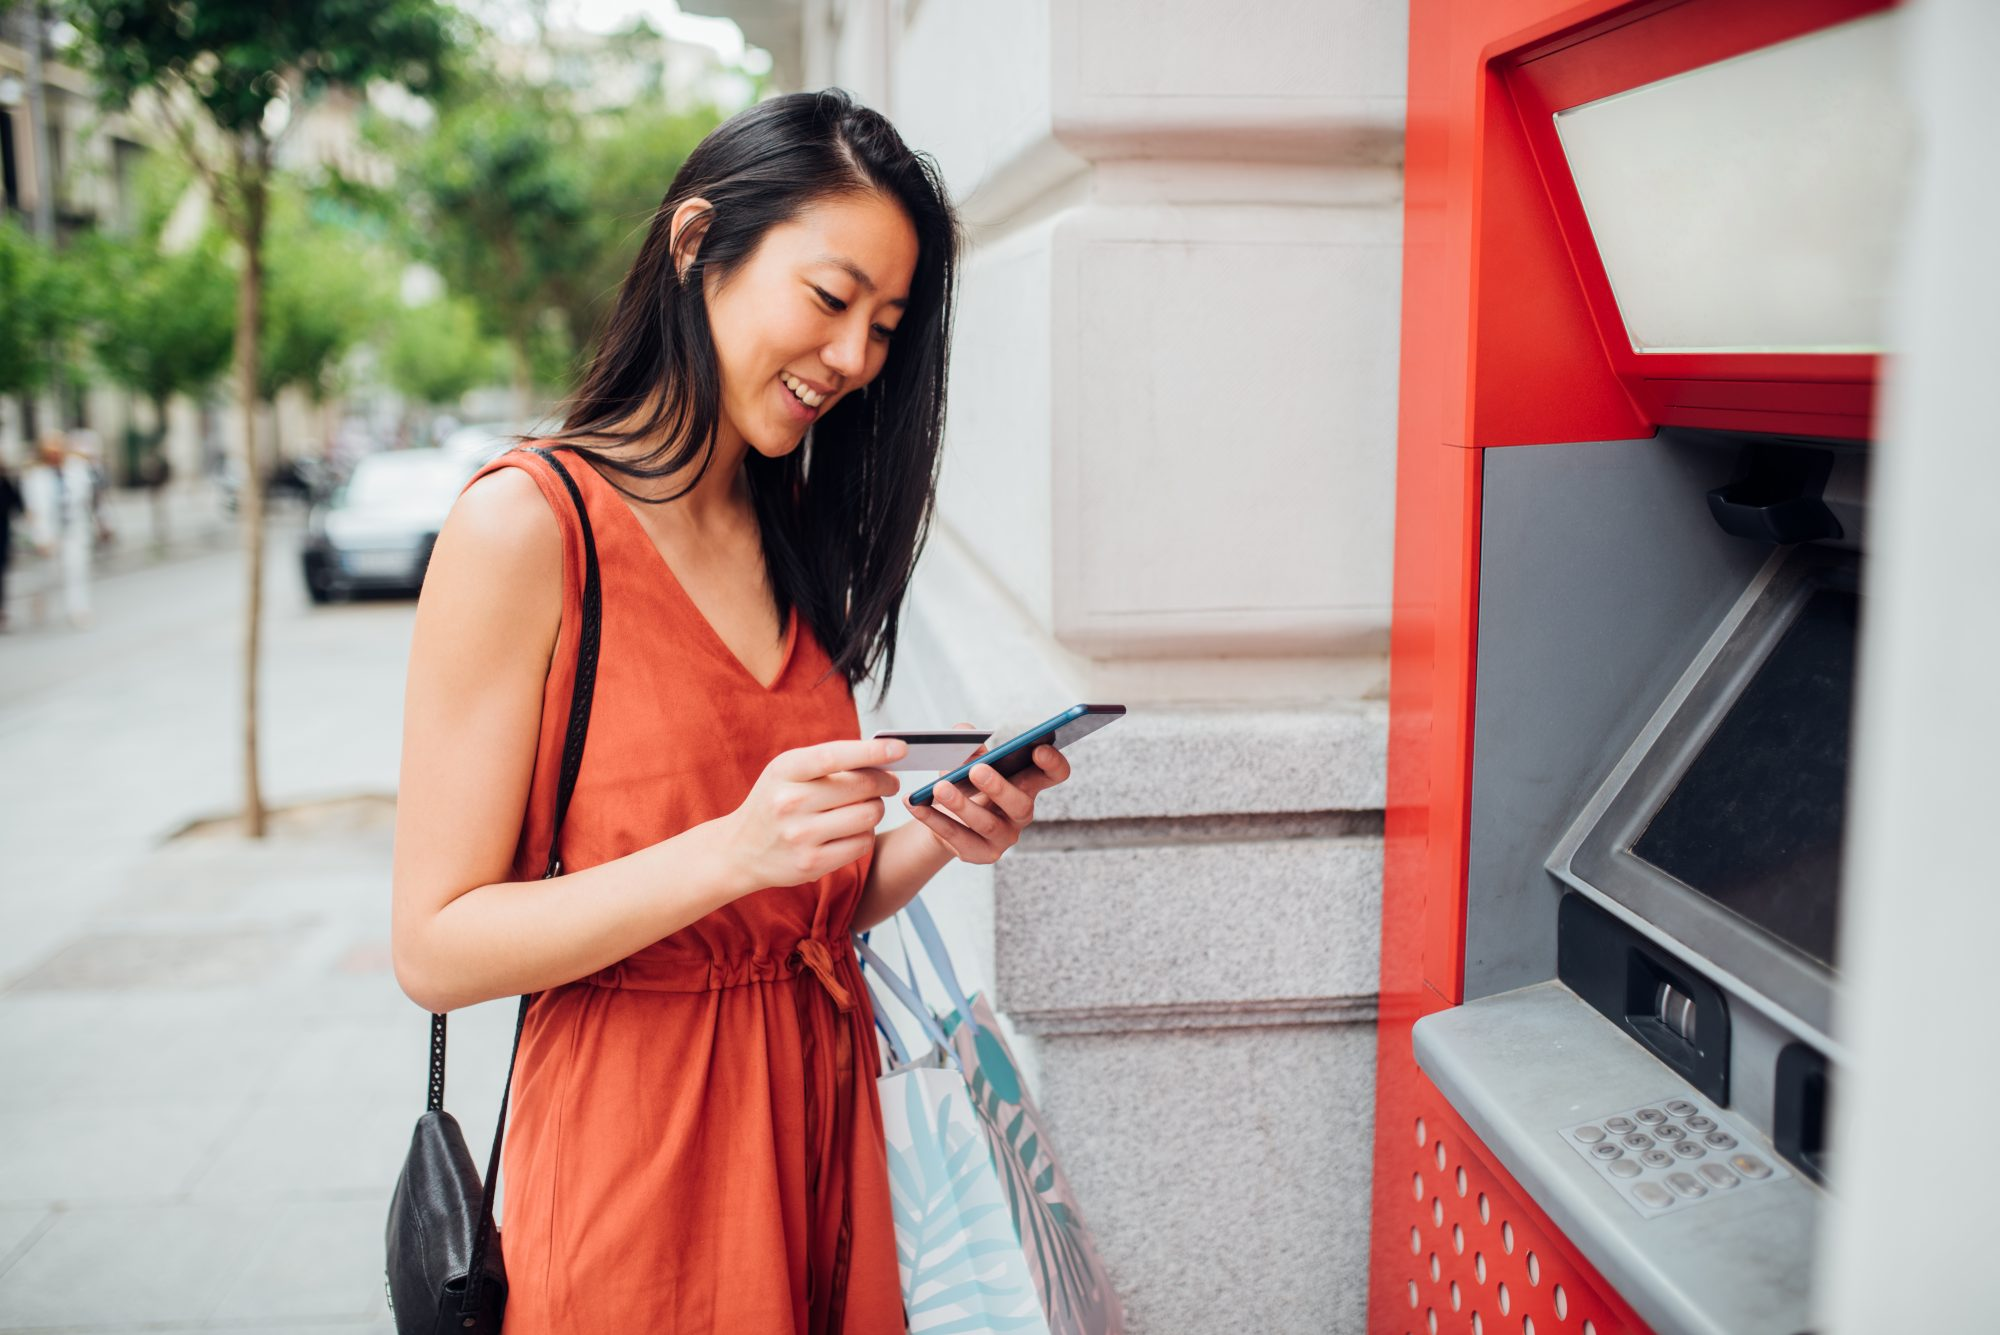 woman banking using atm